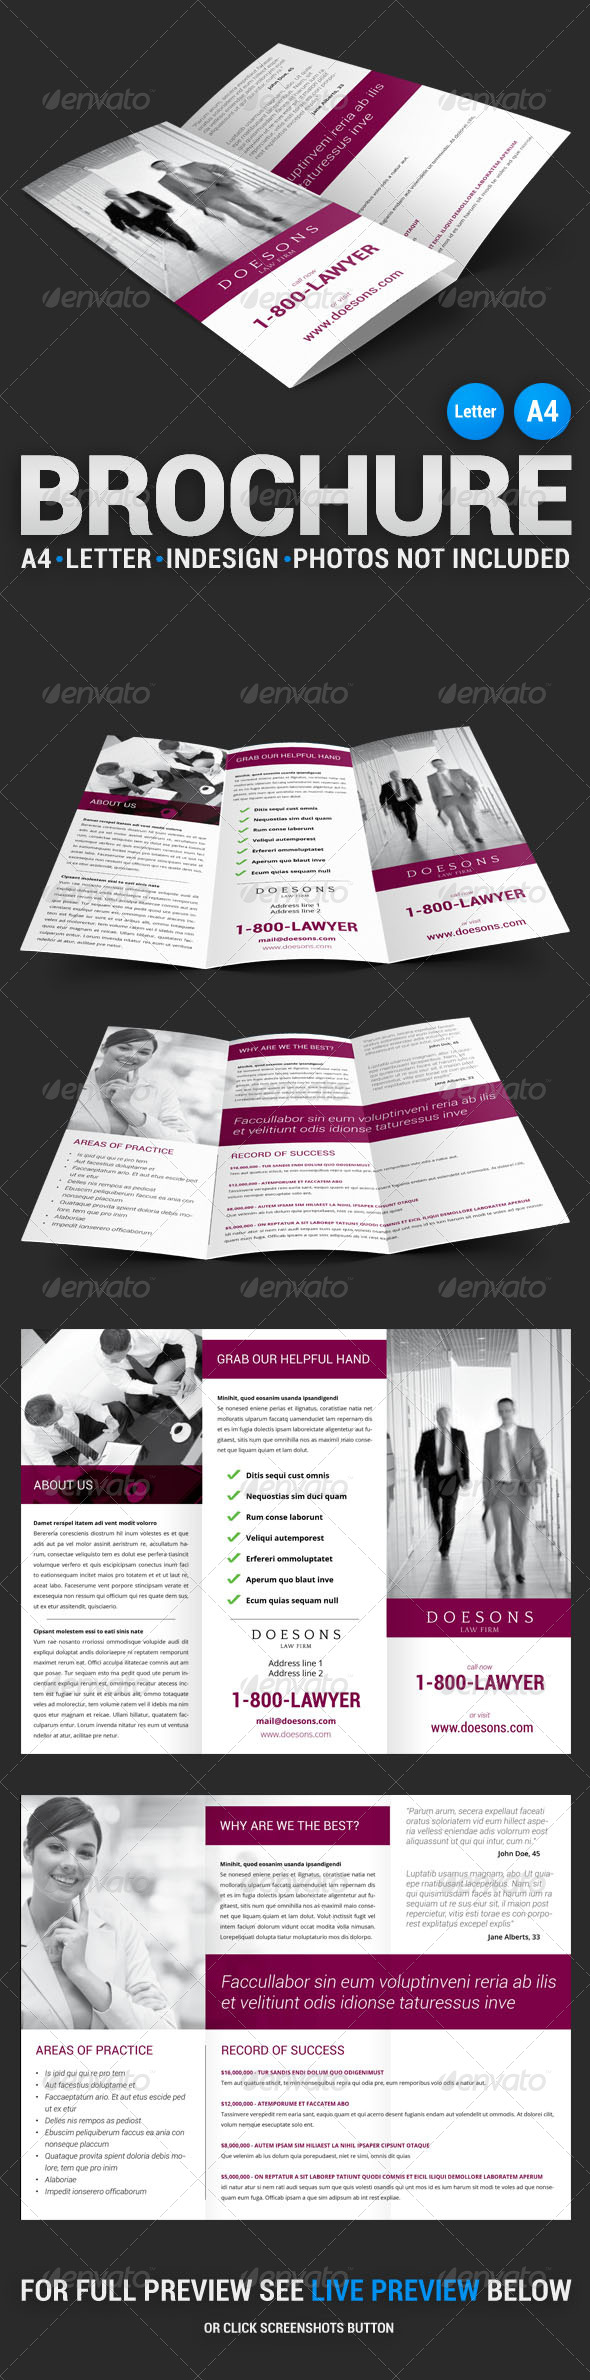 Law Firm Tri-Fold Brochure - Corporate Brochures